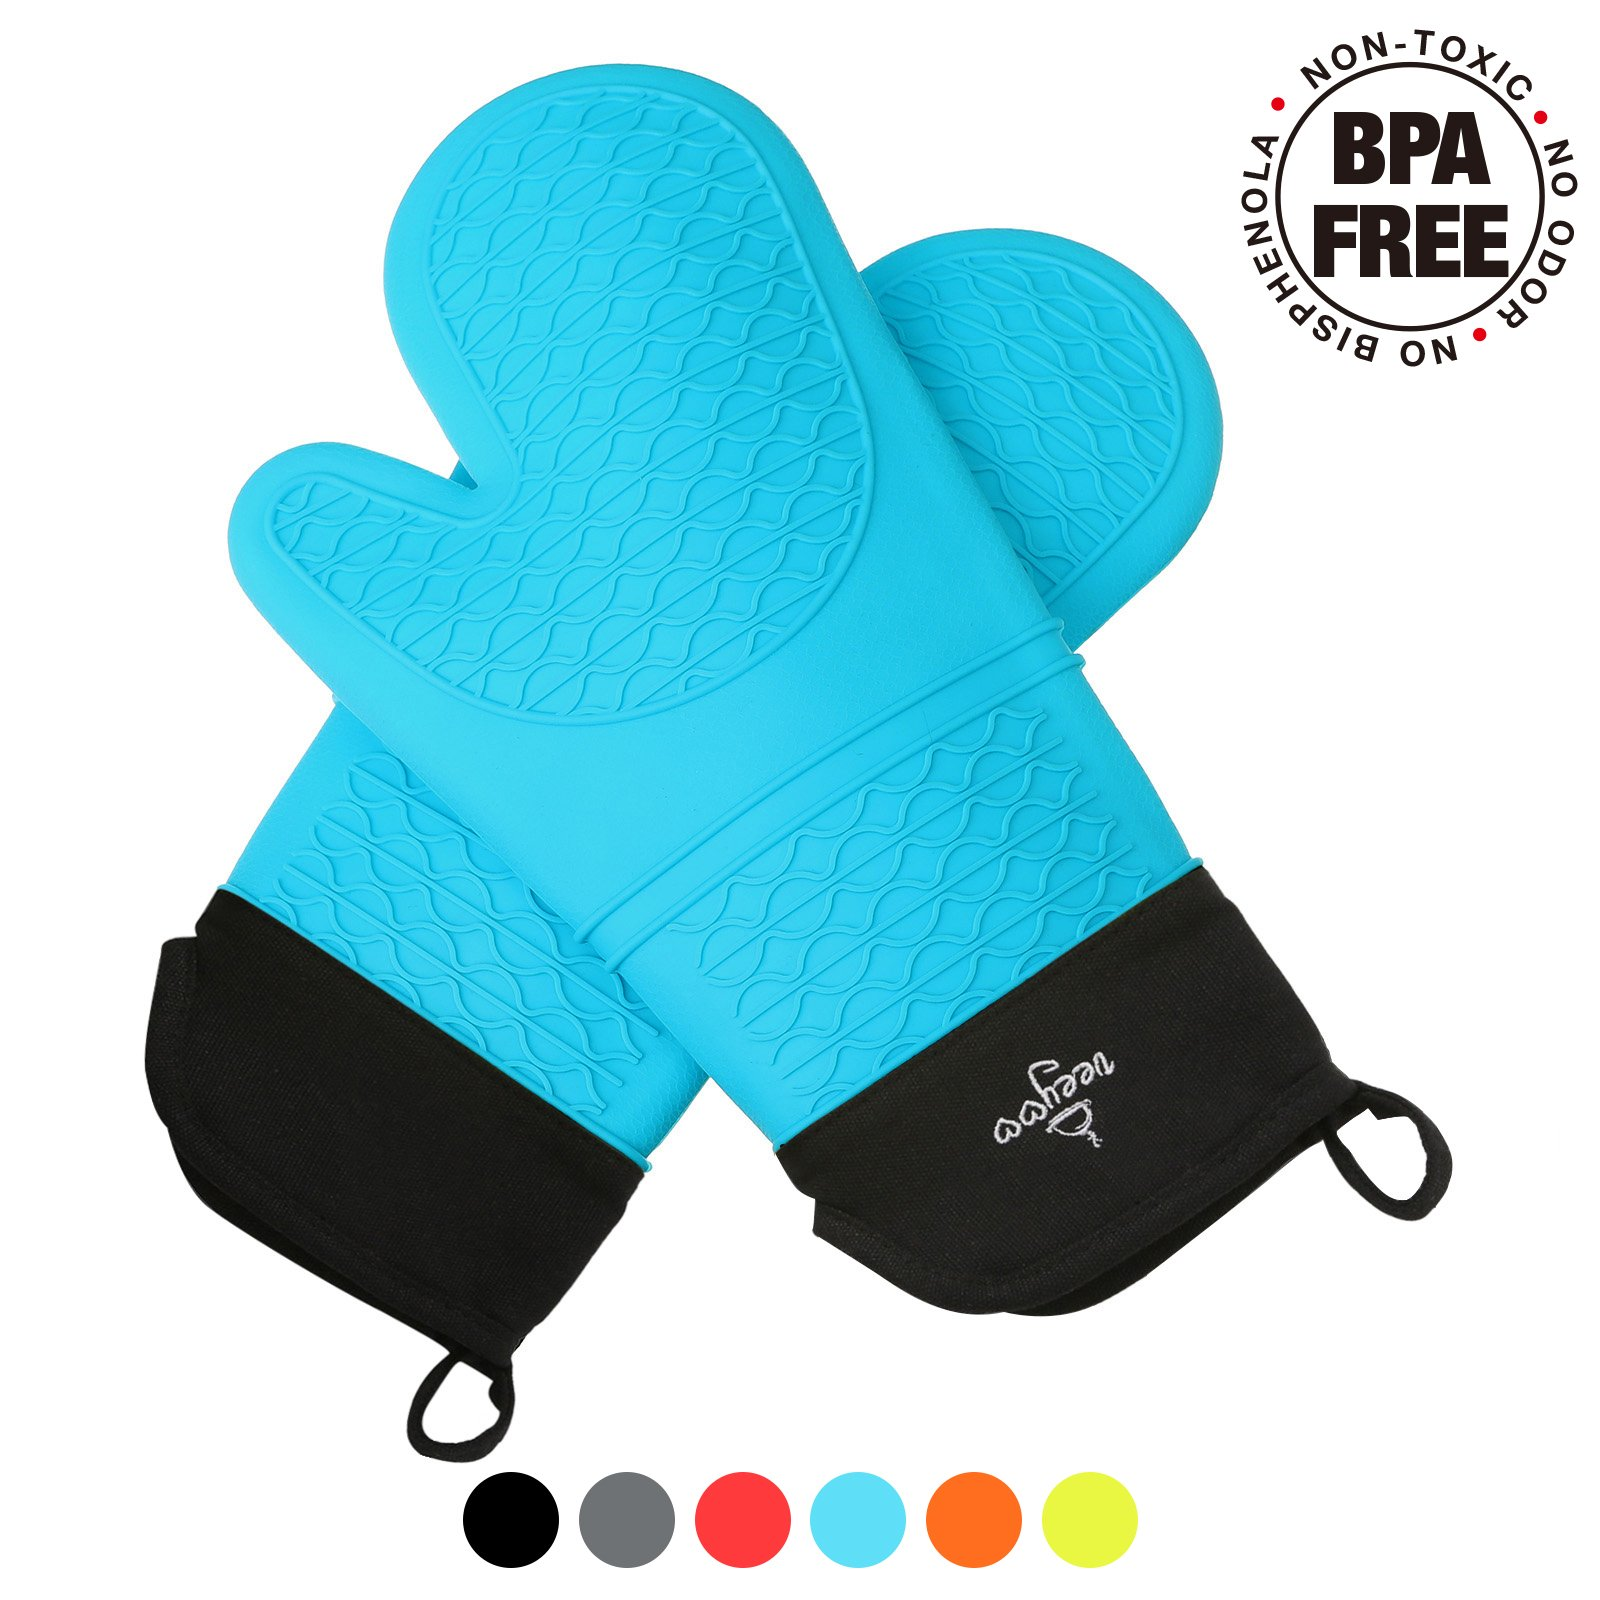 VEEYOO Silicone Blue Oven Mitts Extra-long BPA Free Kitchen Grips Gloves with Non-slip Heat Resistant Cooking Pot Holder Grilling BBQ Baking Oven Fireplace Camping Kitchen for Women and Man